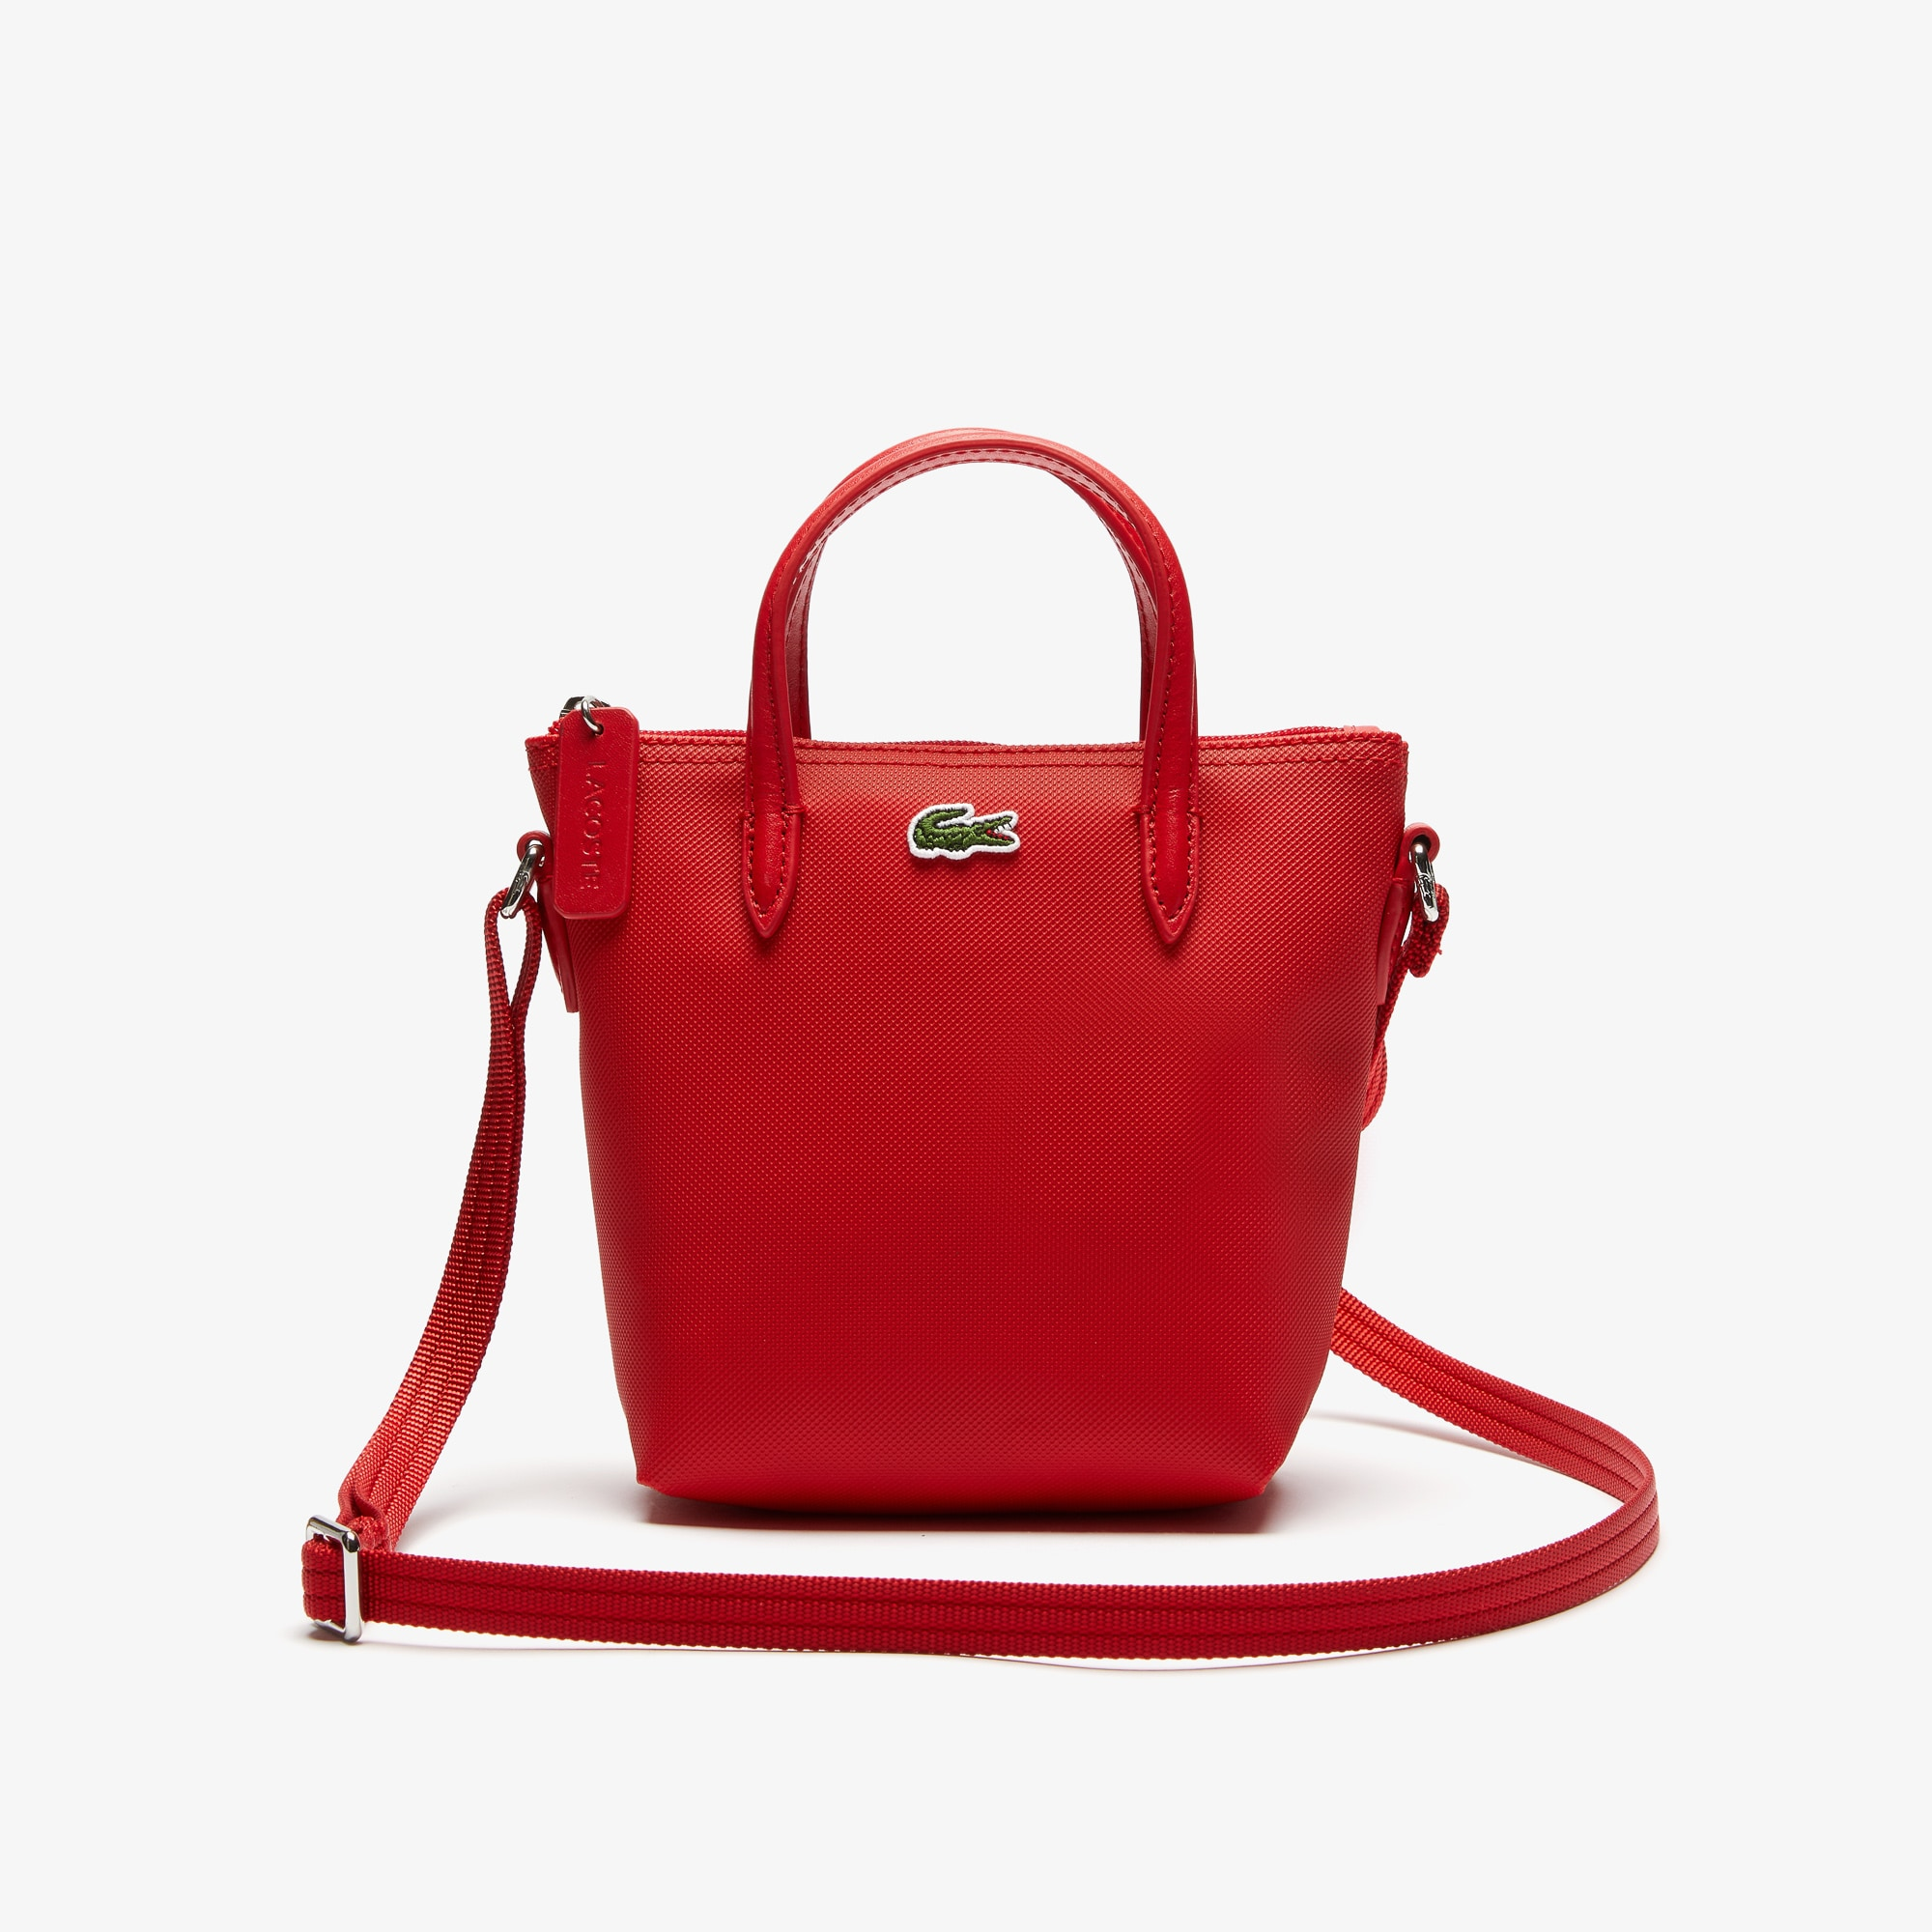 5a0ac204e773 Purses and Handbags  Clutches and Totes   LACOSTE